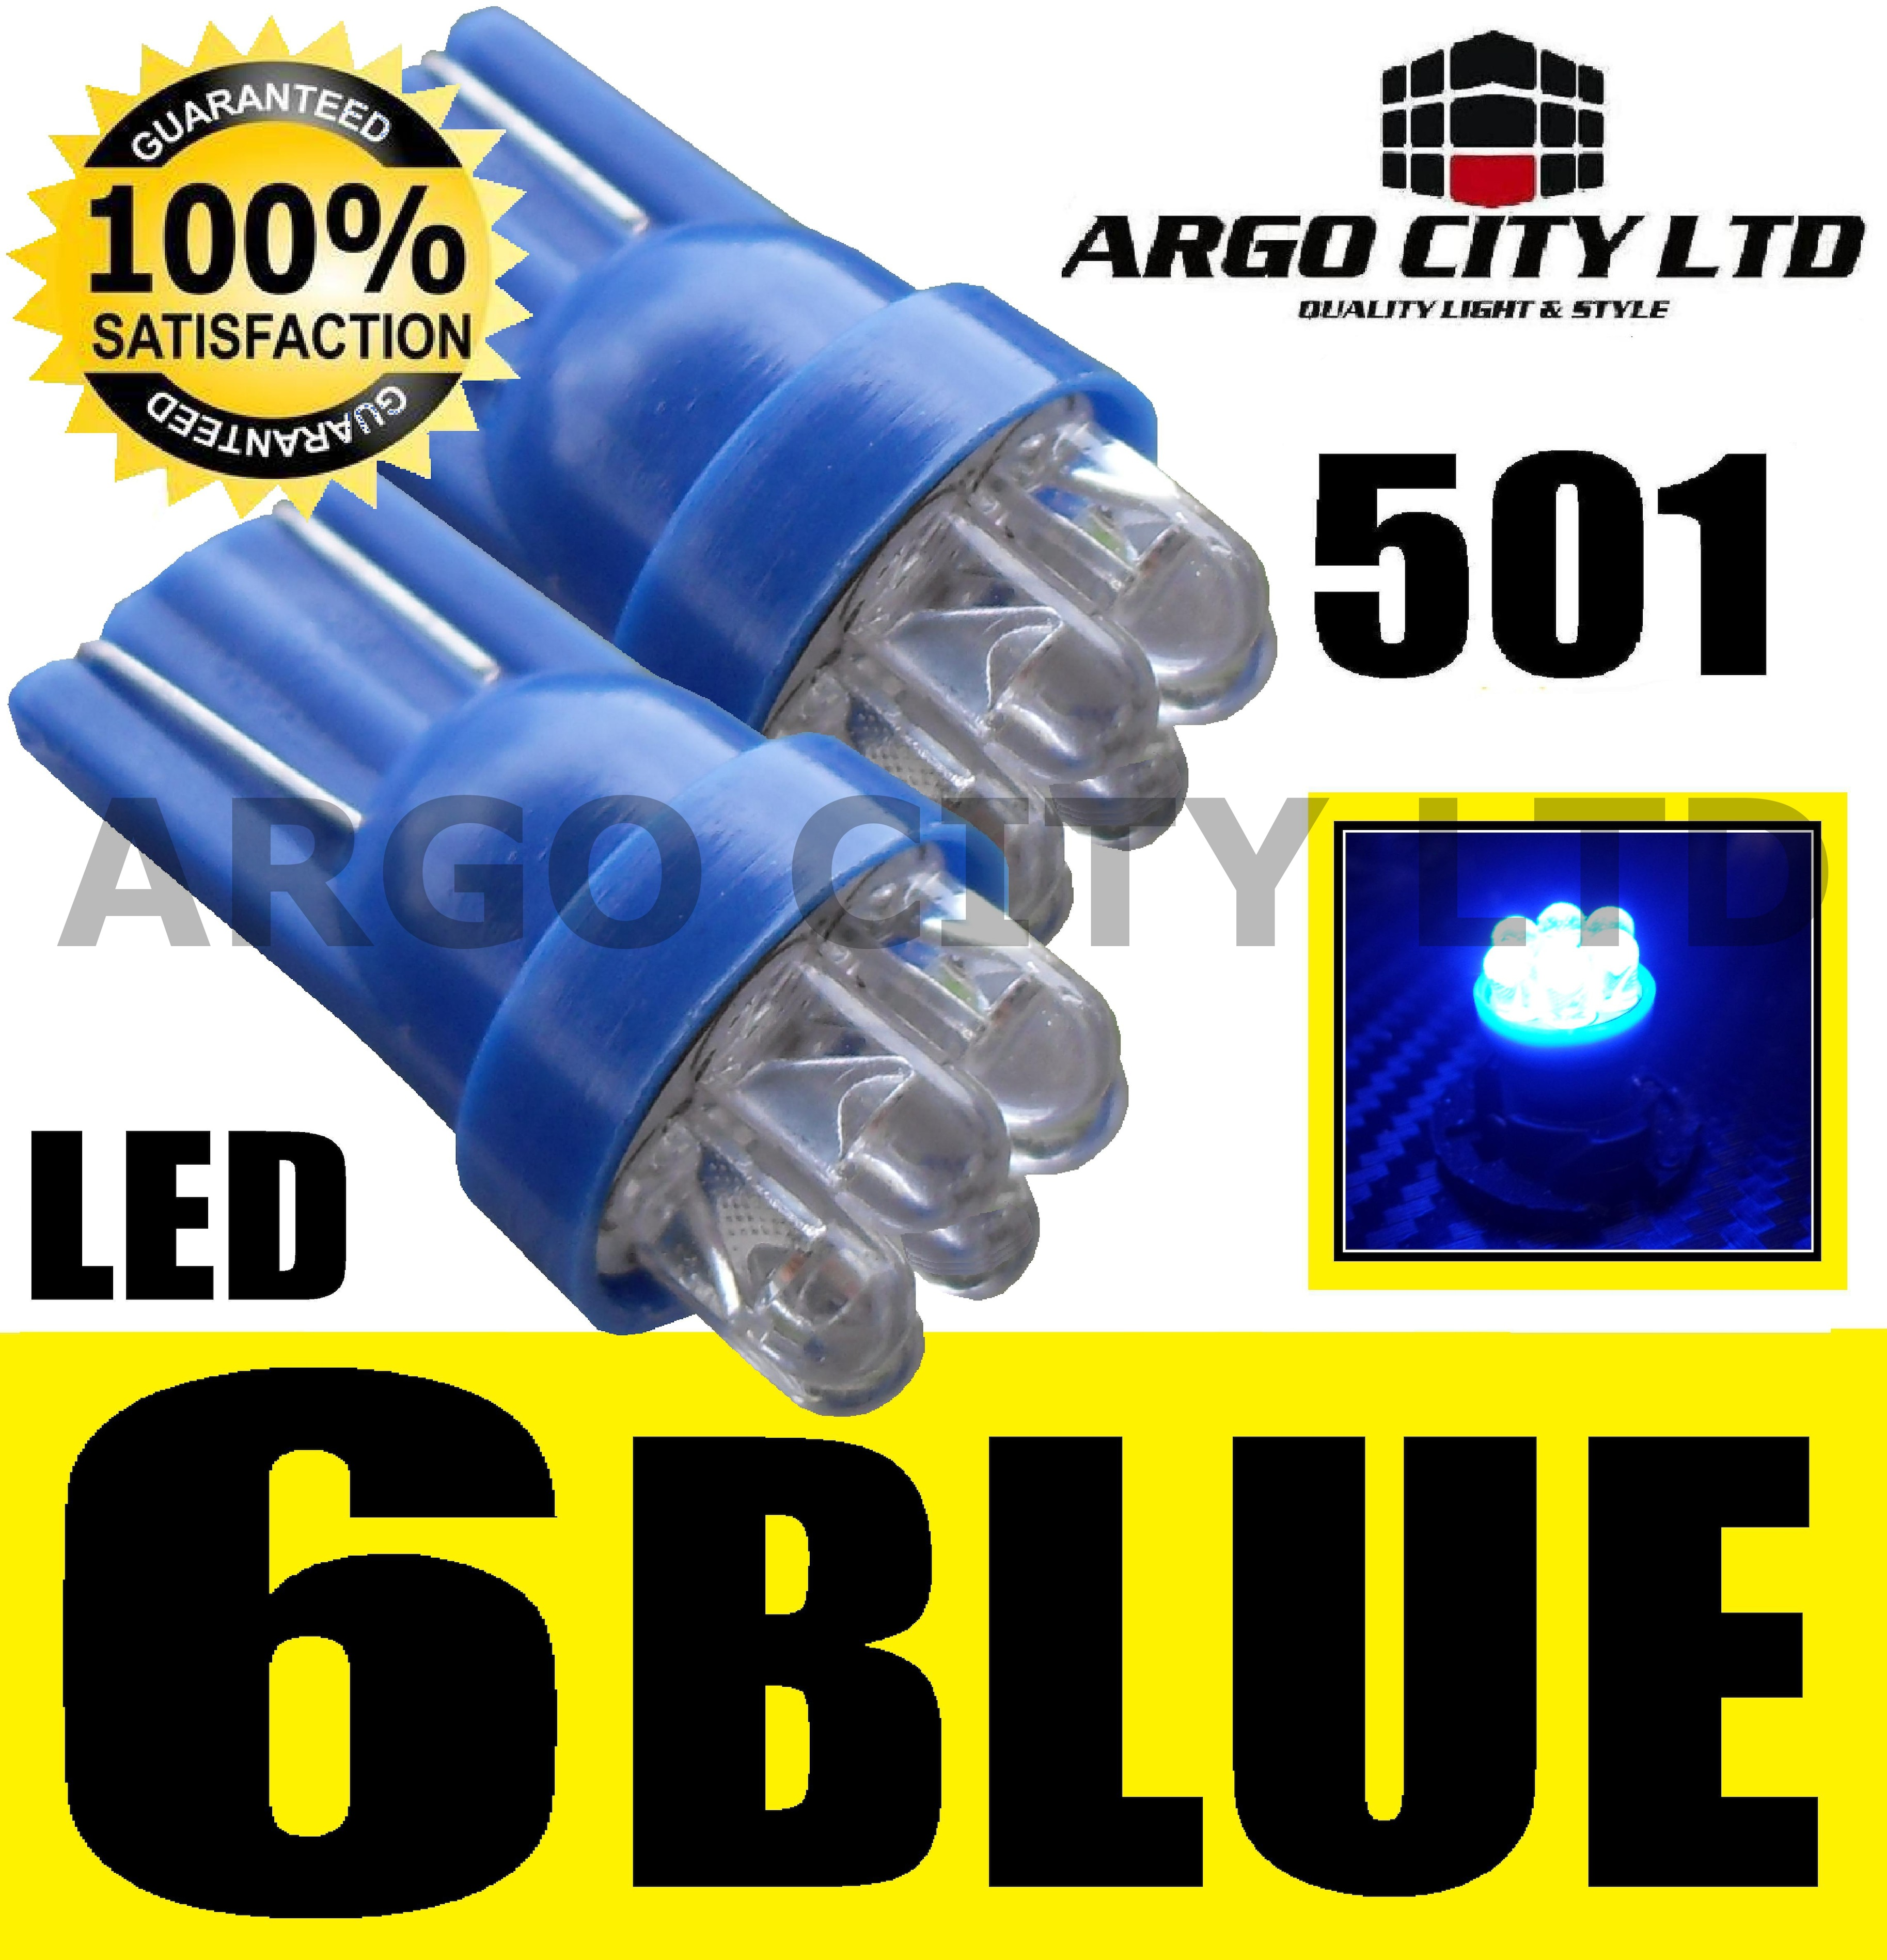 6 LED XENON BLUE 501 194 T10 W5W SIDELIGHT BULBS HYUNDAI GETZ